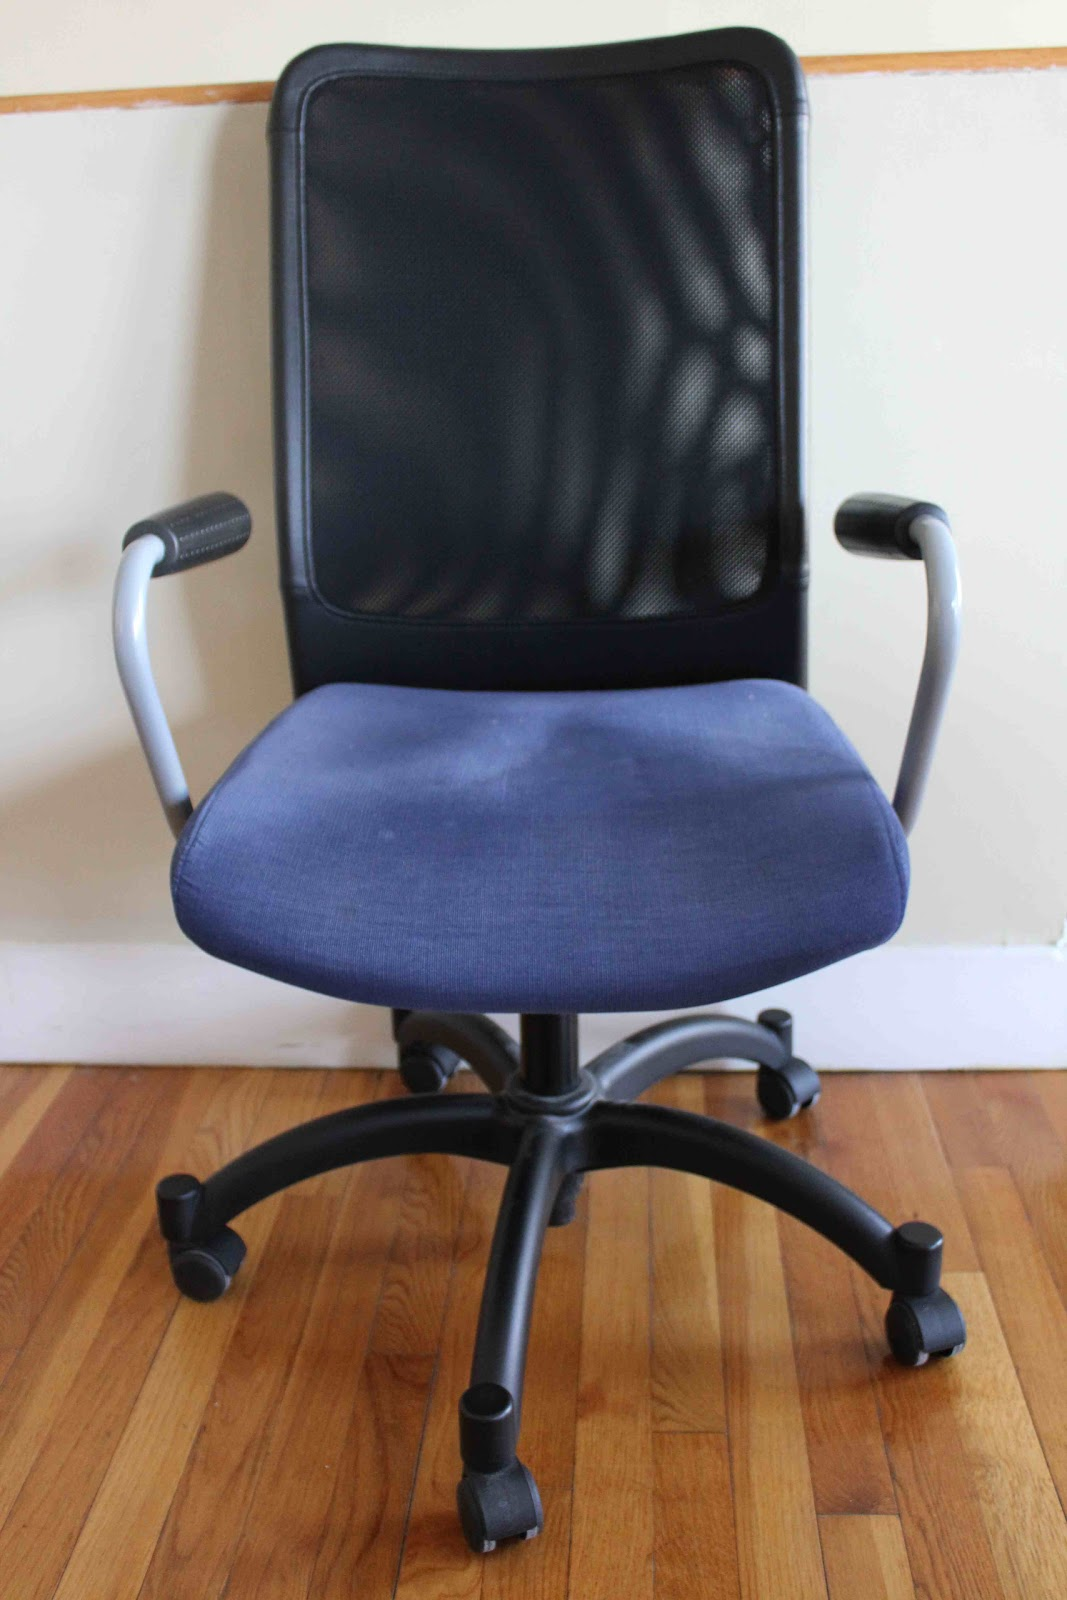 ikea mesh office chair target kitchen cushions moving sale desk with armrests sold